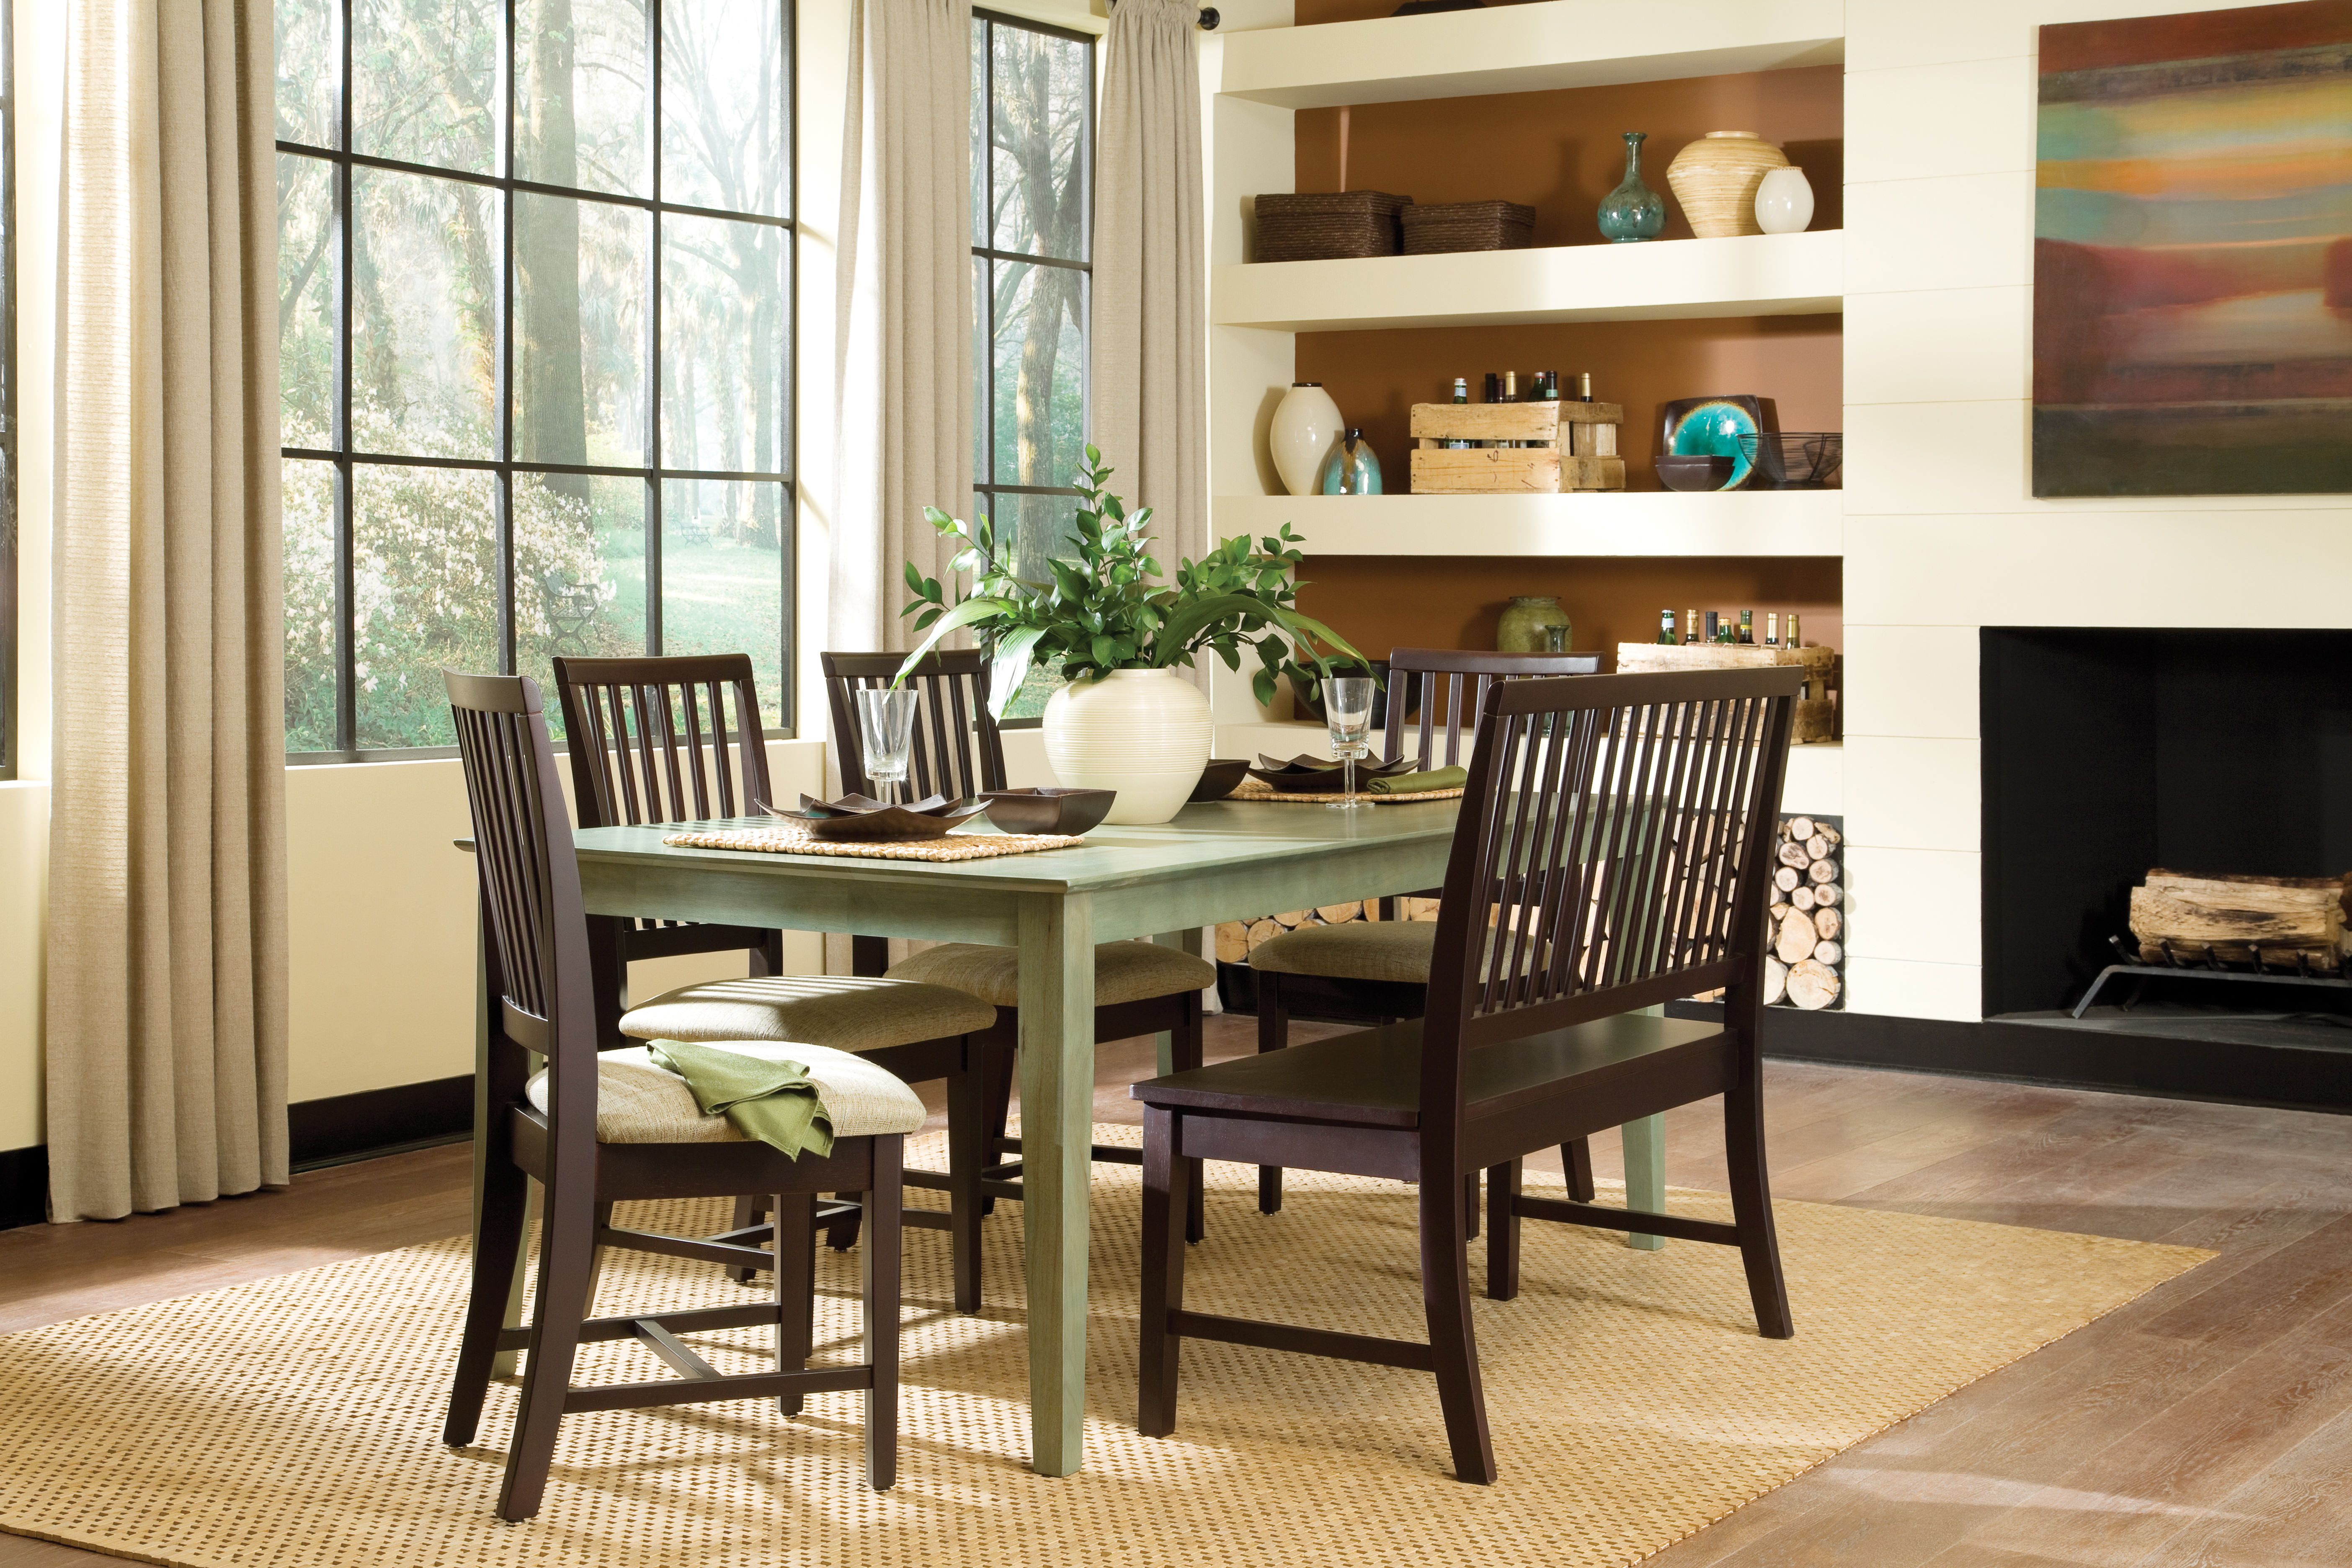 table and chair sale kitchen and dining room furniture whitewood espresso and moss green dining set